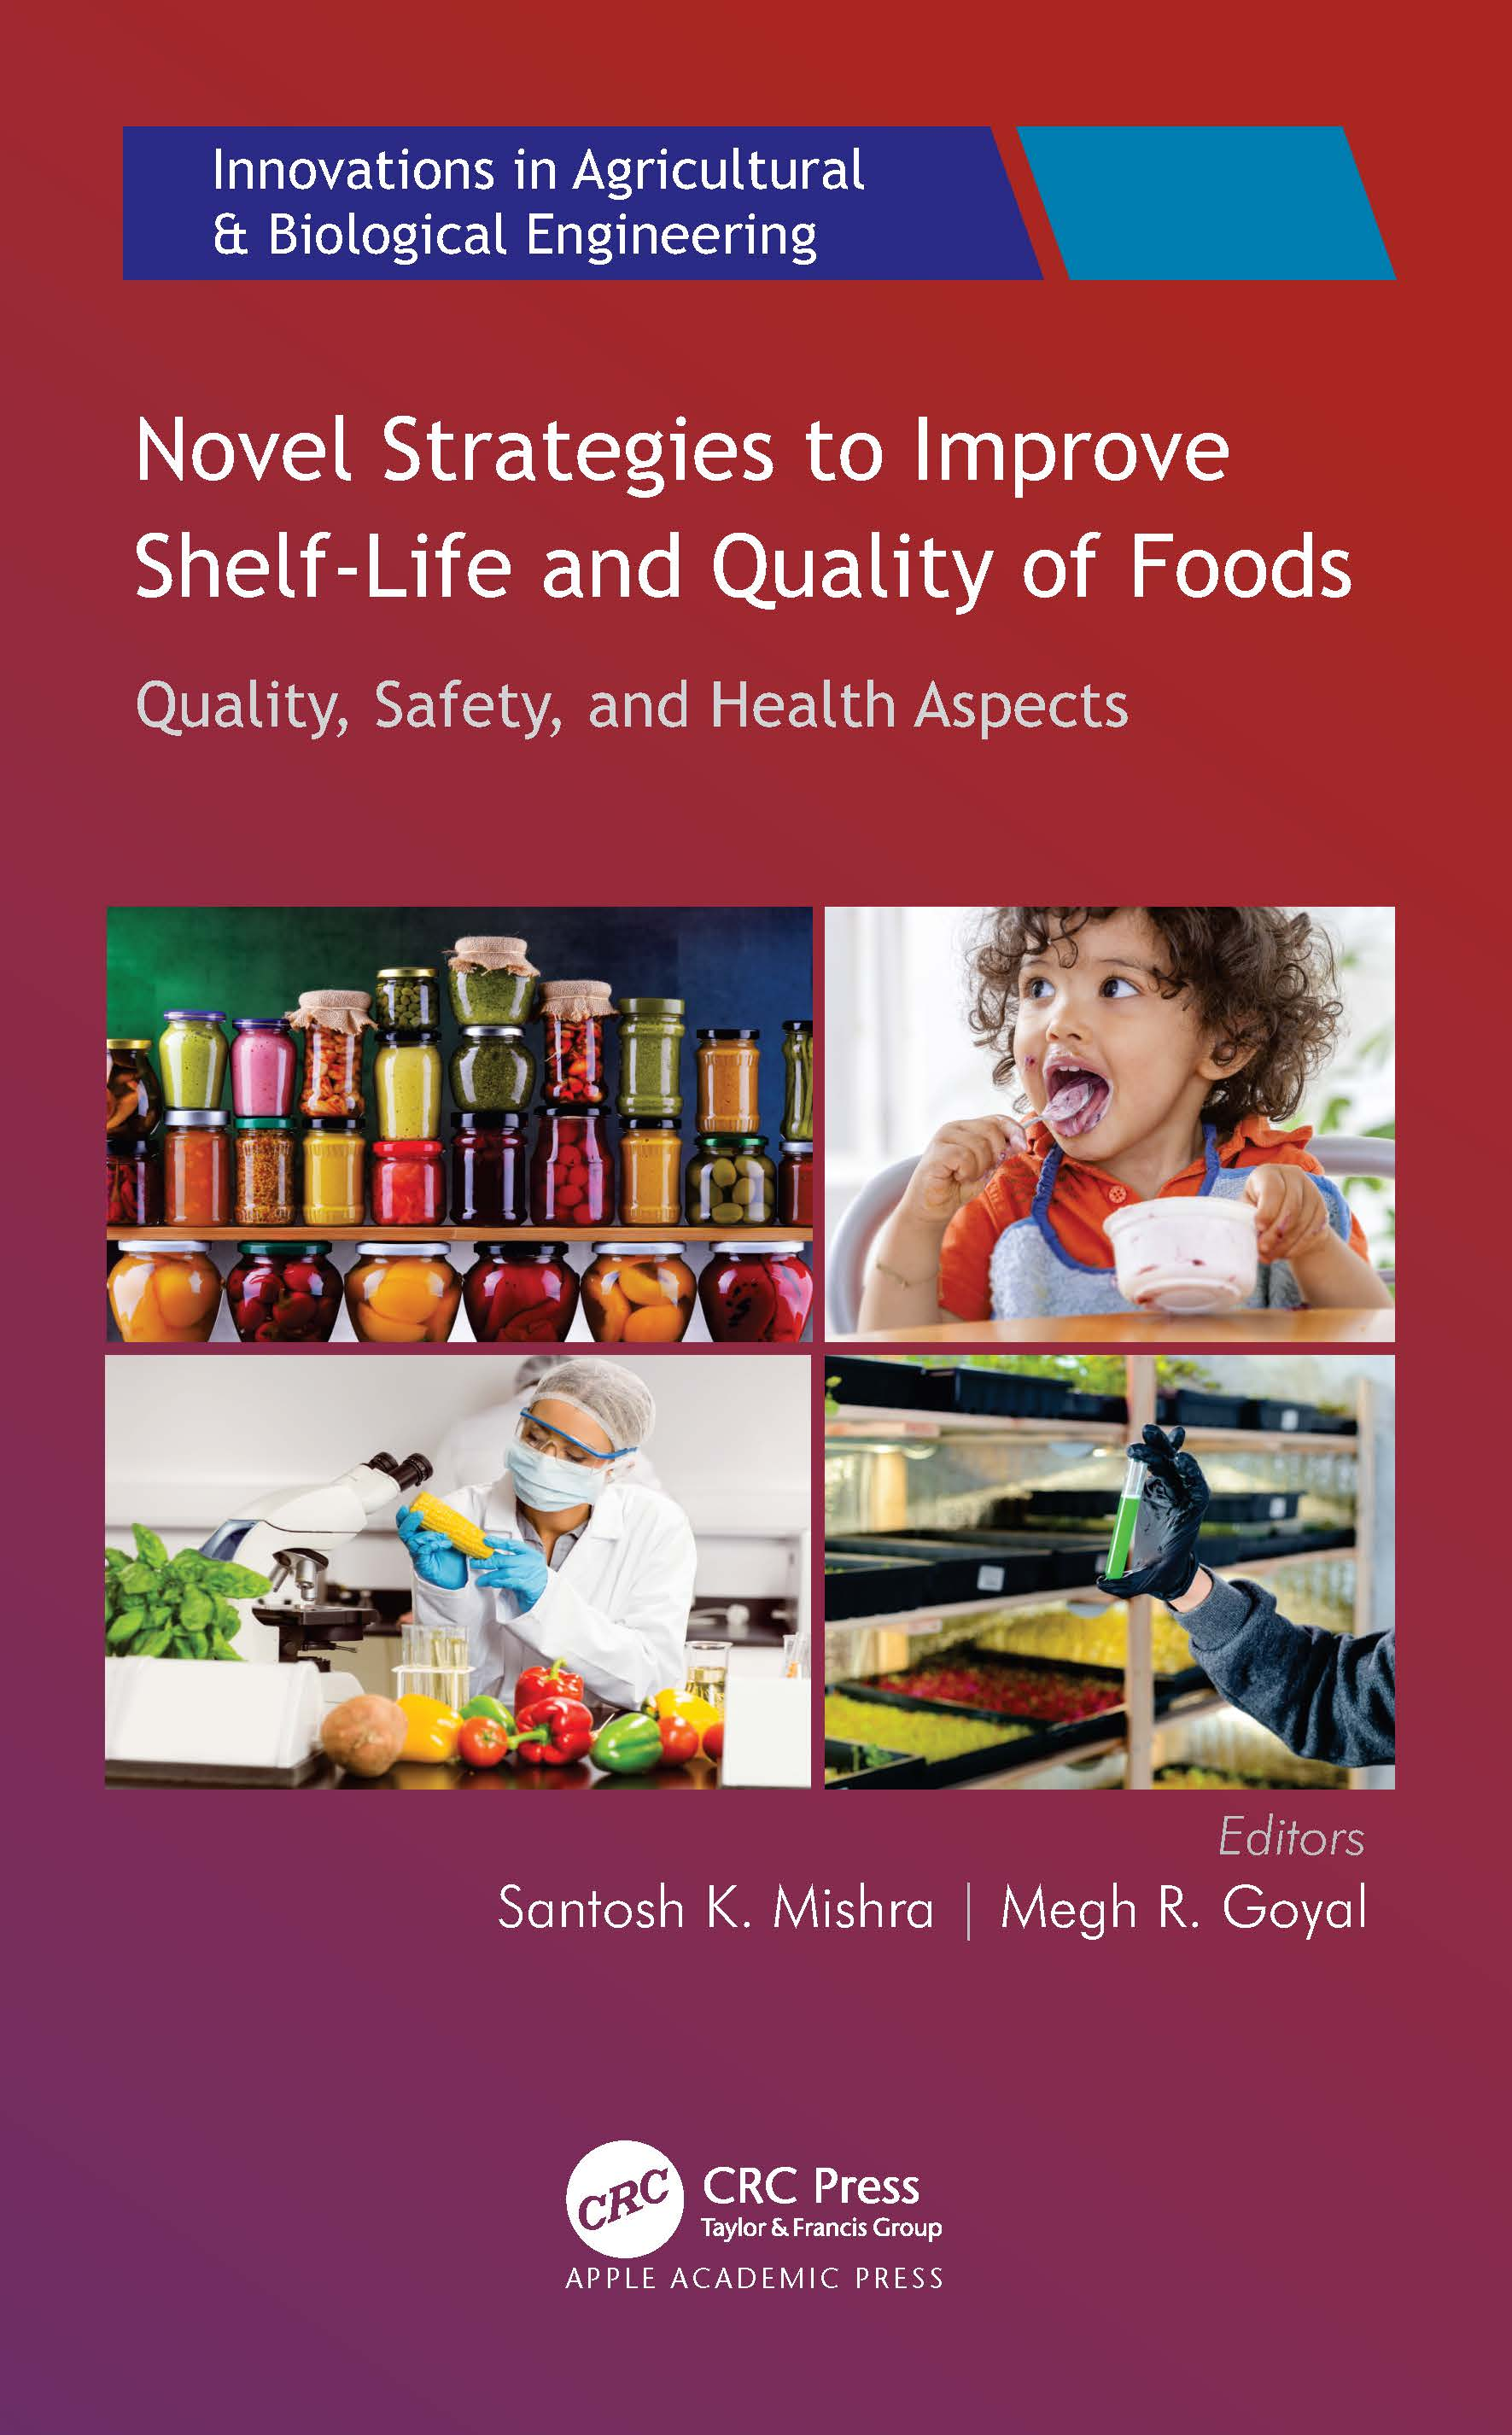 Application of Pulsed Light Technology in Microbial Safety and Food Preservation